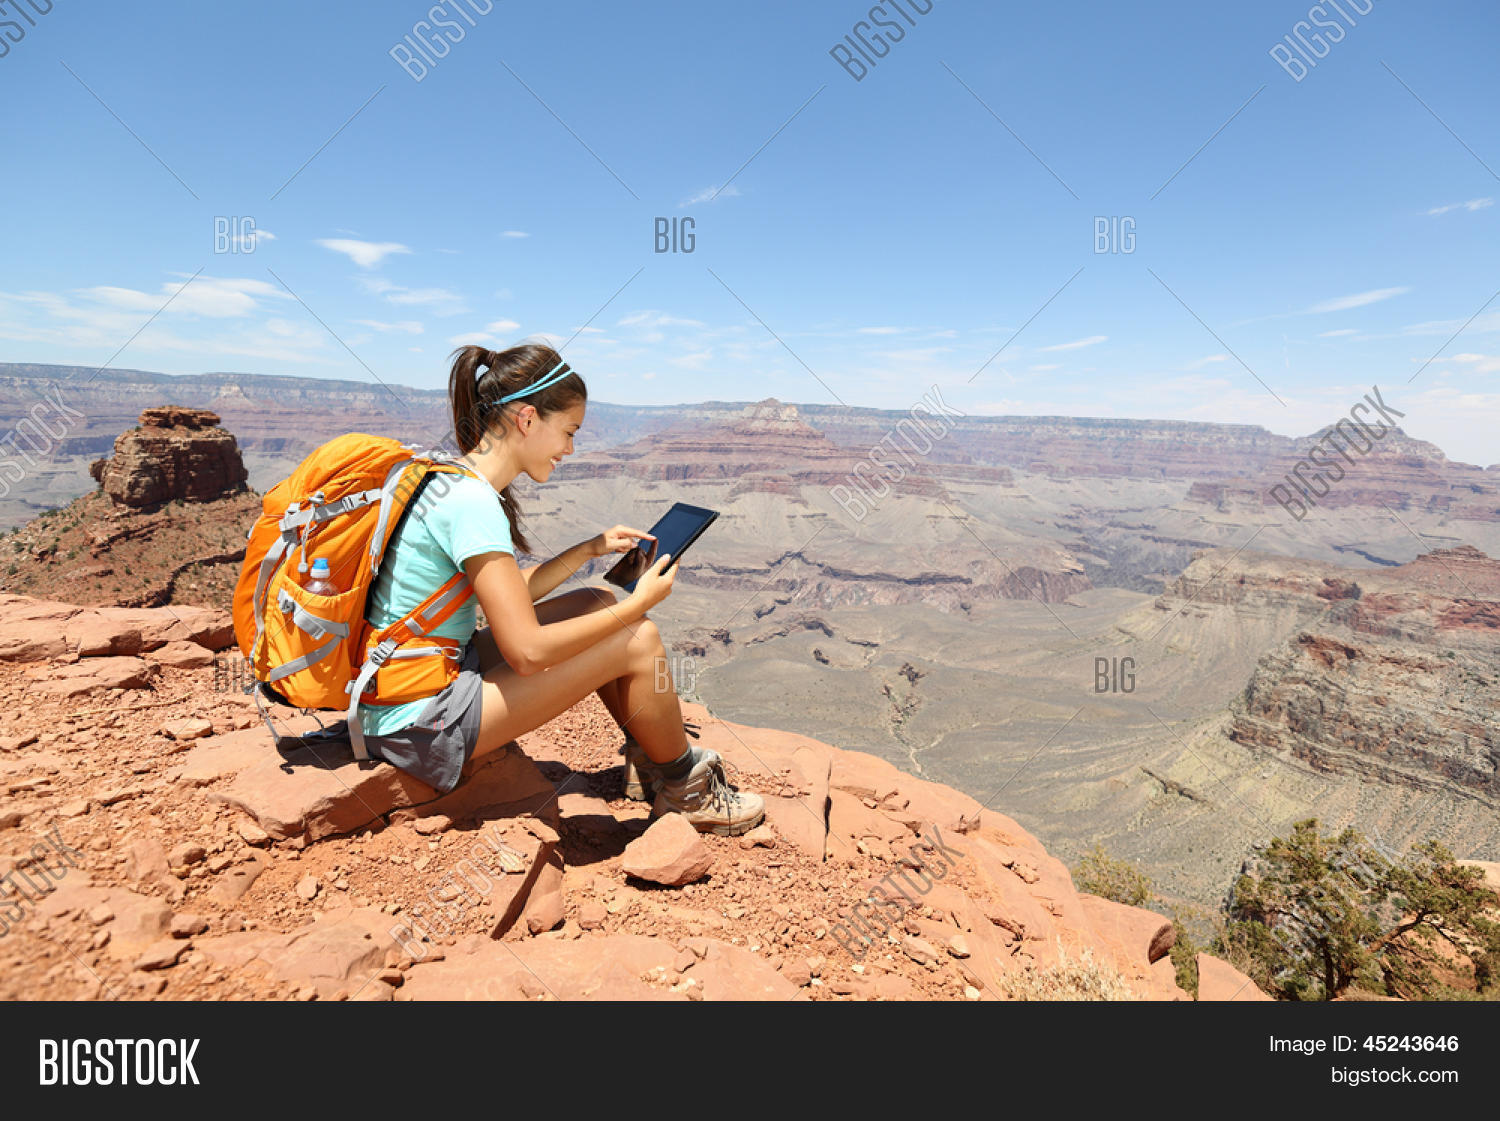 Tablet Computer Woman Image Photo Free Trial Bigstock